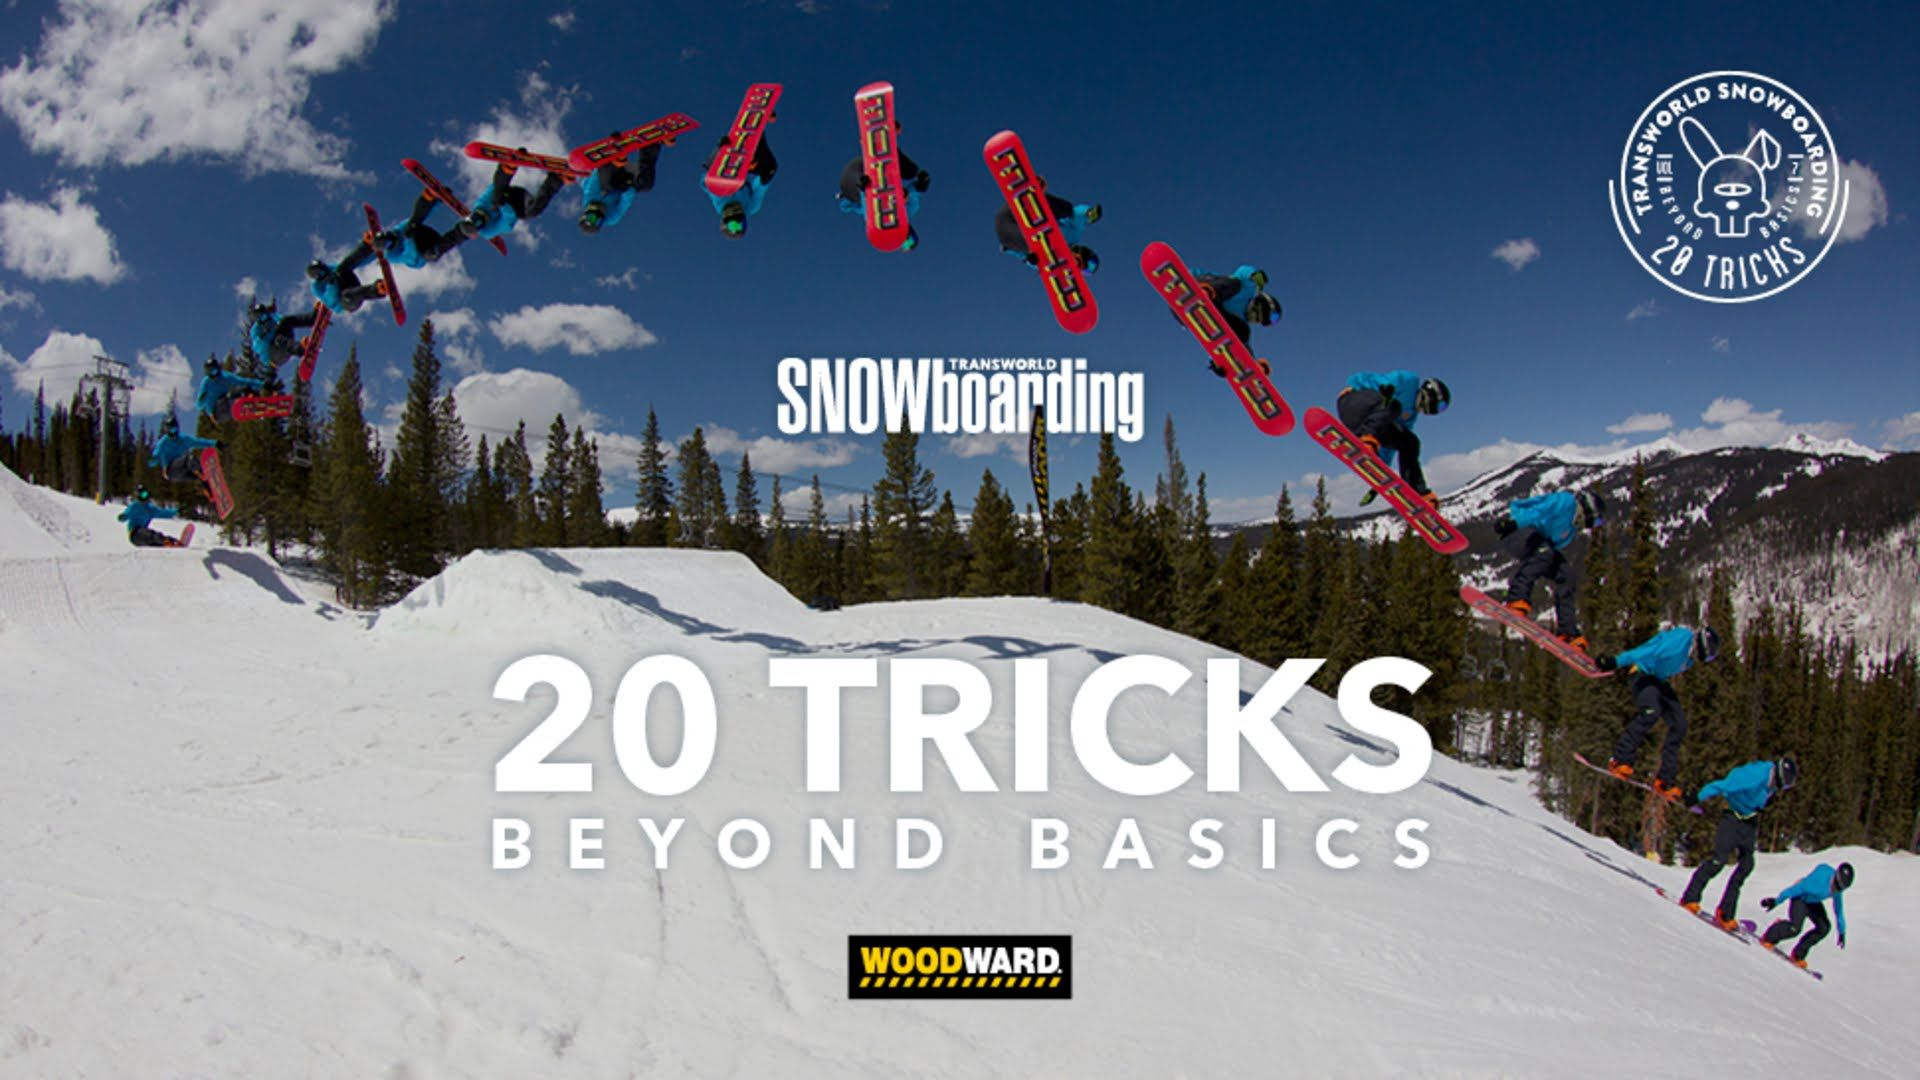 How To Snowboard Cab 540 S With Seamus O Connor Transworld Snowboarding Vulza Forged By Artists Transworld Snowboarding Snowboarding Snowboard